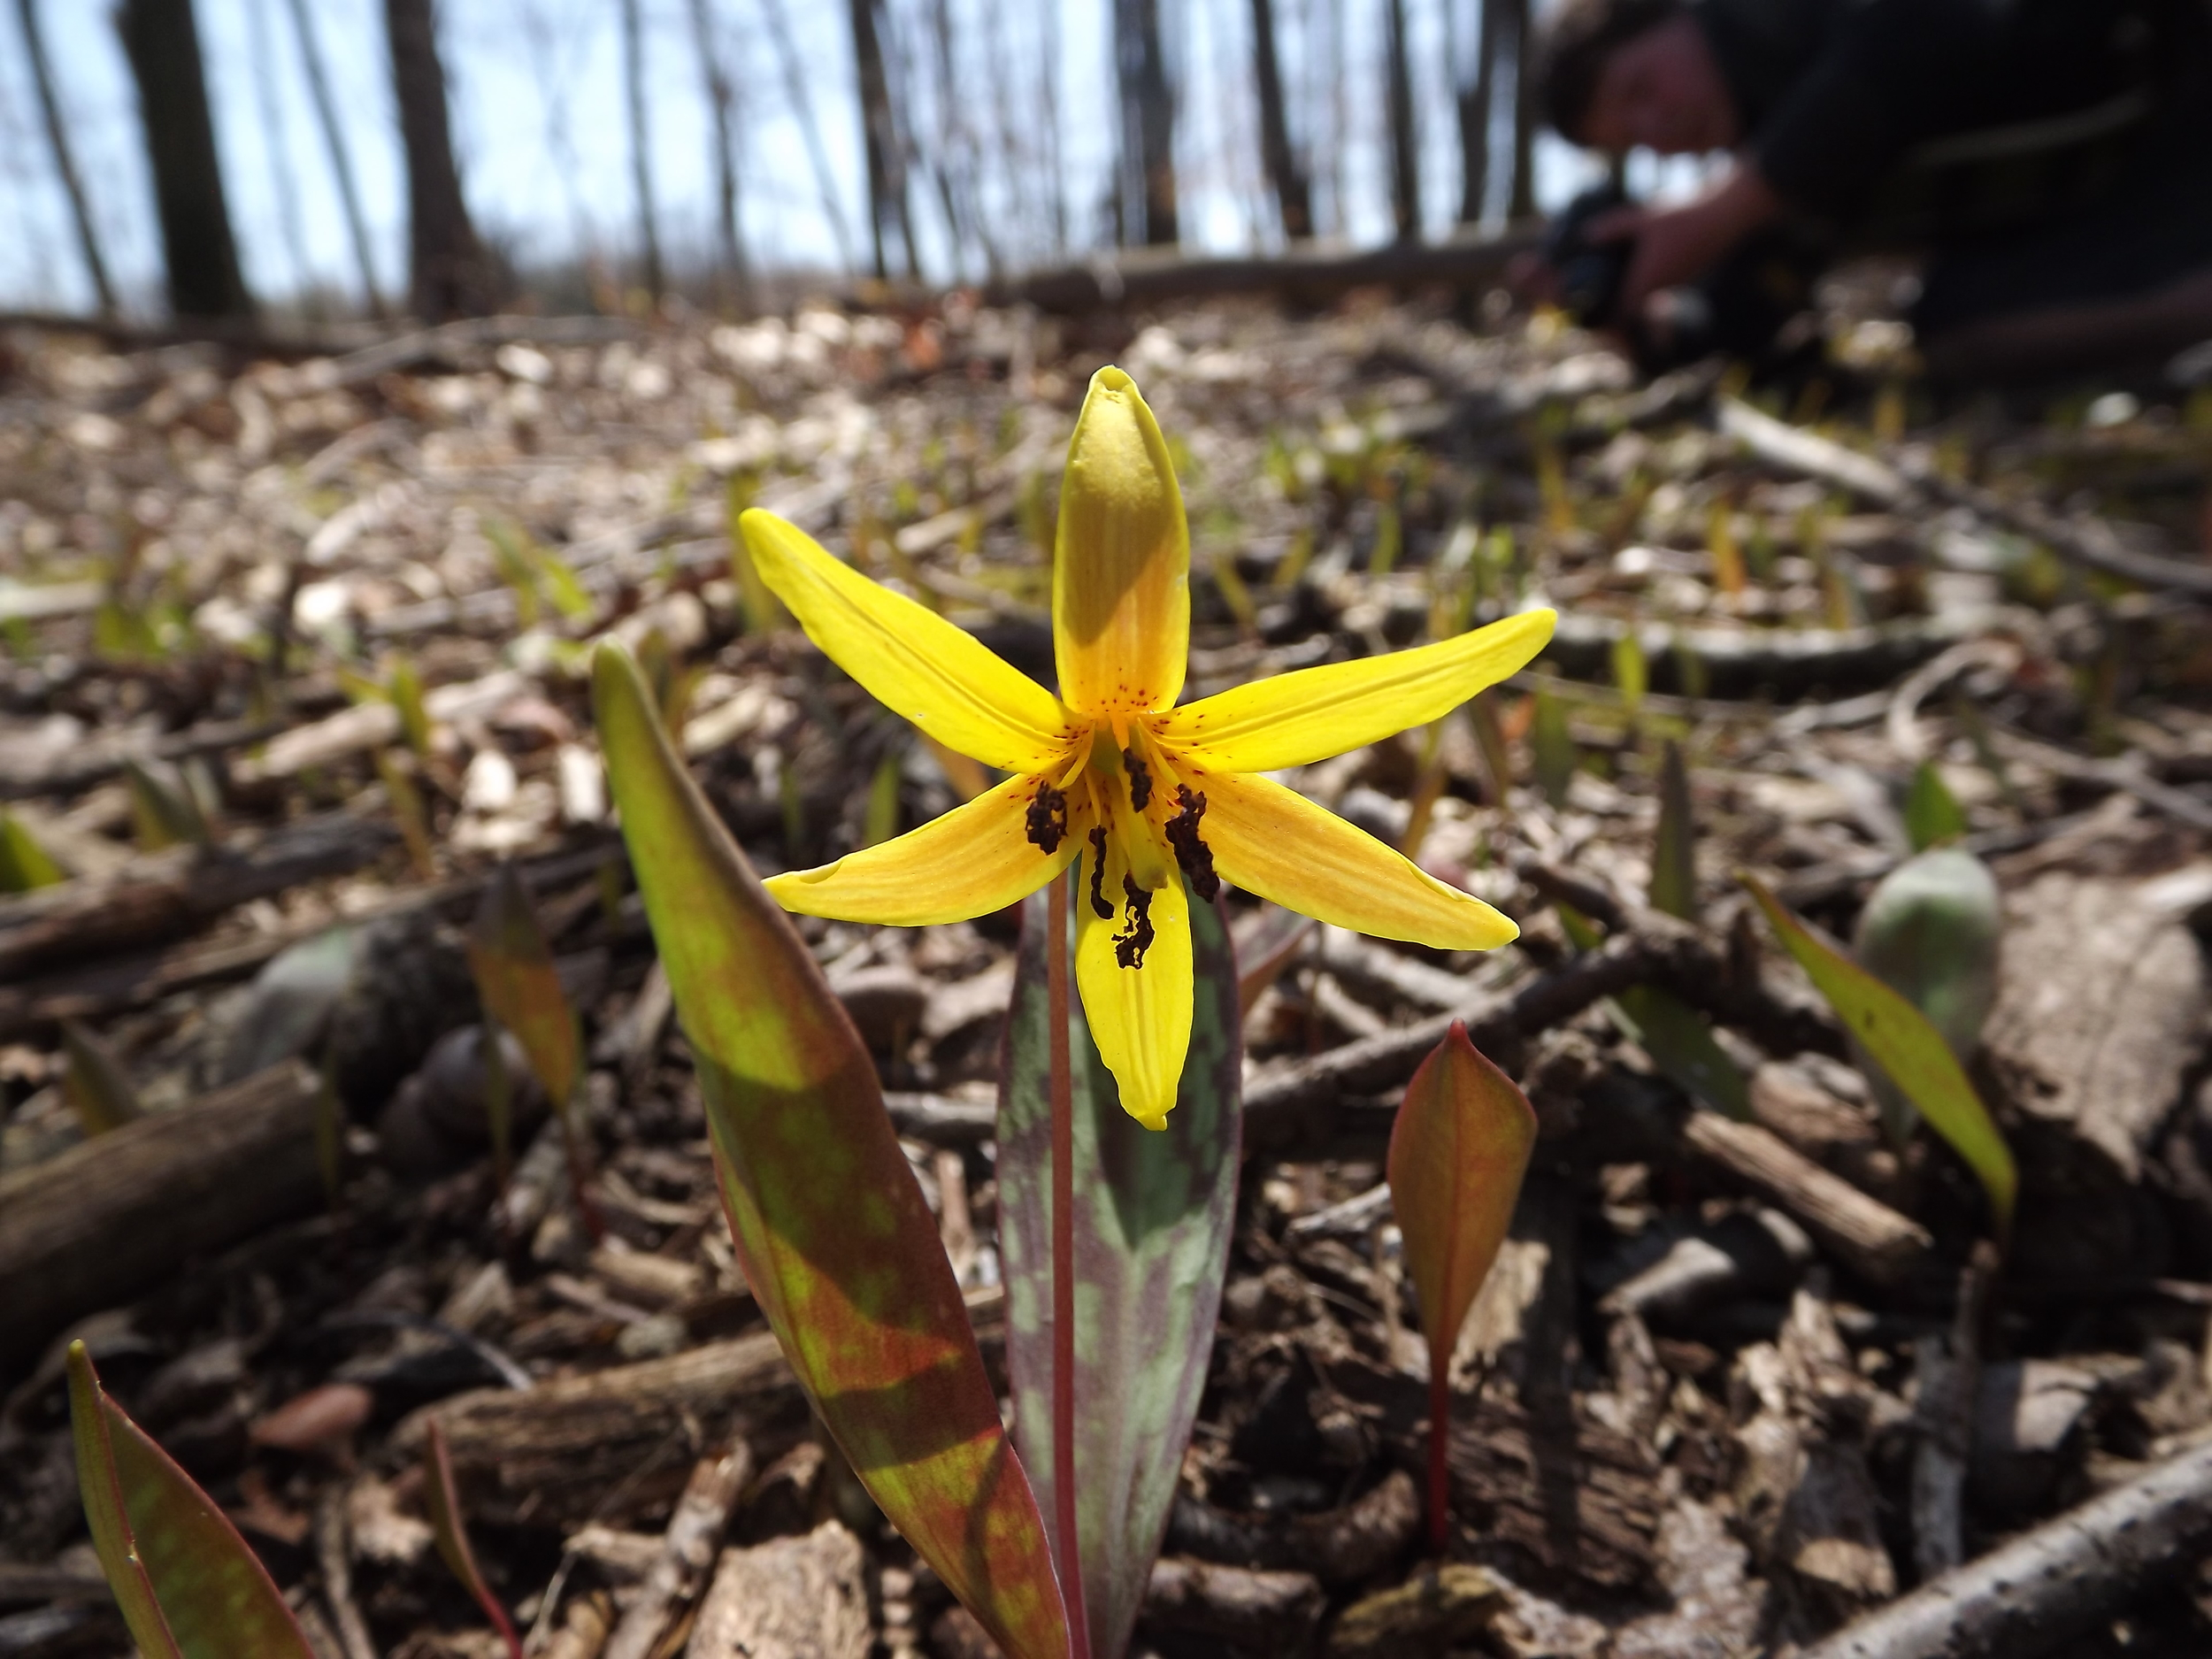 Trout Lily ( Erythronium americanum ) - We found this Trout Lily on the island across from our cabin. The sun was positioned perfectly to backlight the flower petals making for a perfect photograph. Trout Lilys don't last long, but when they're in their prime, they are absolutely beautiful.